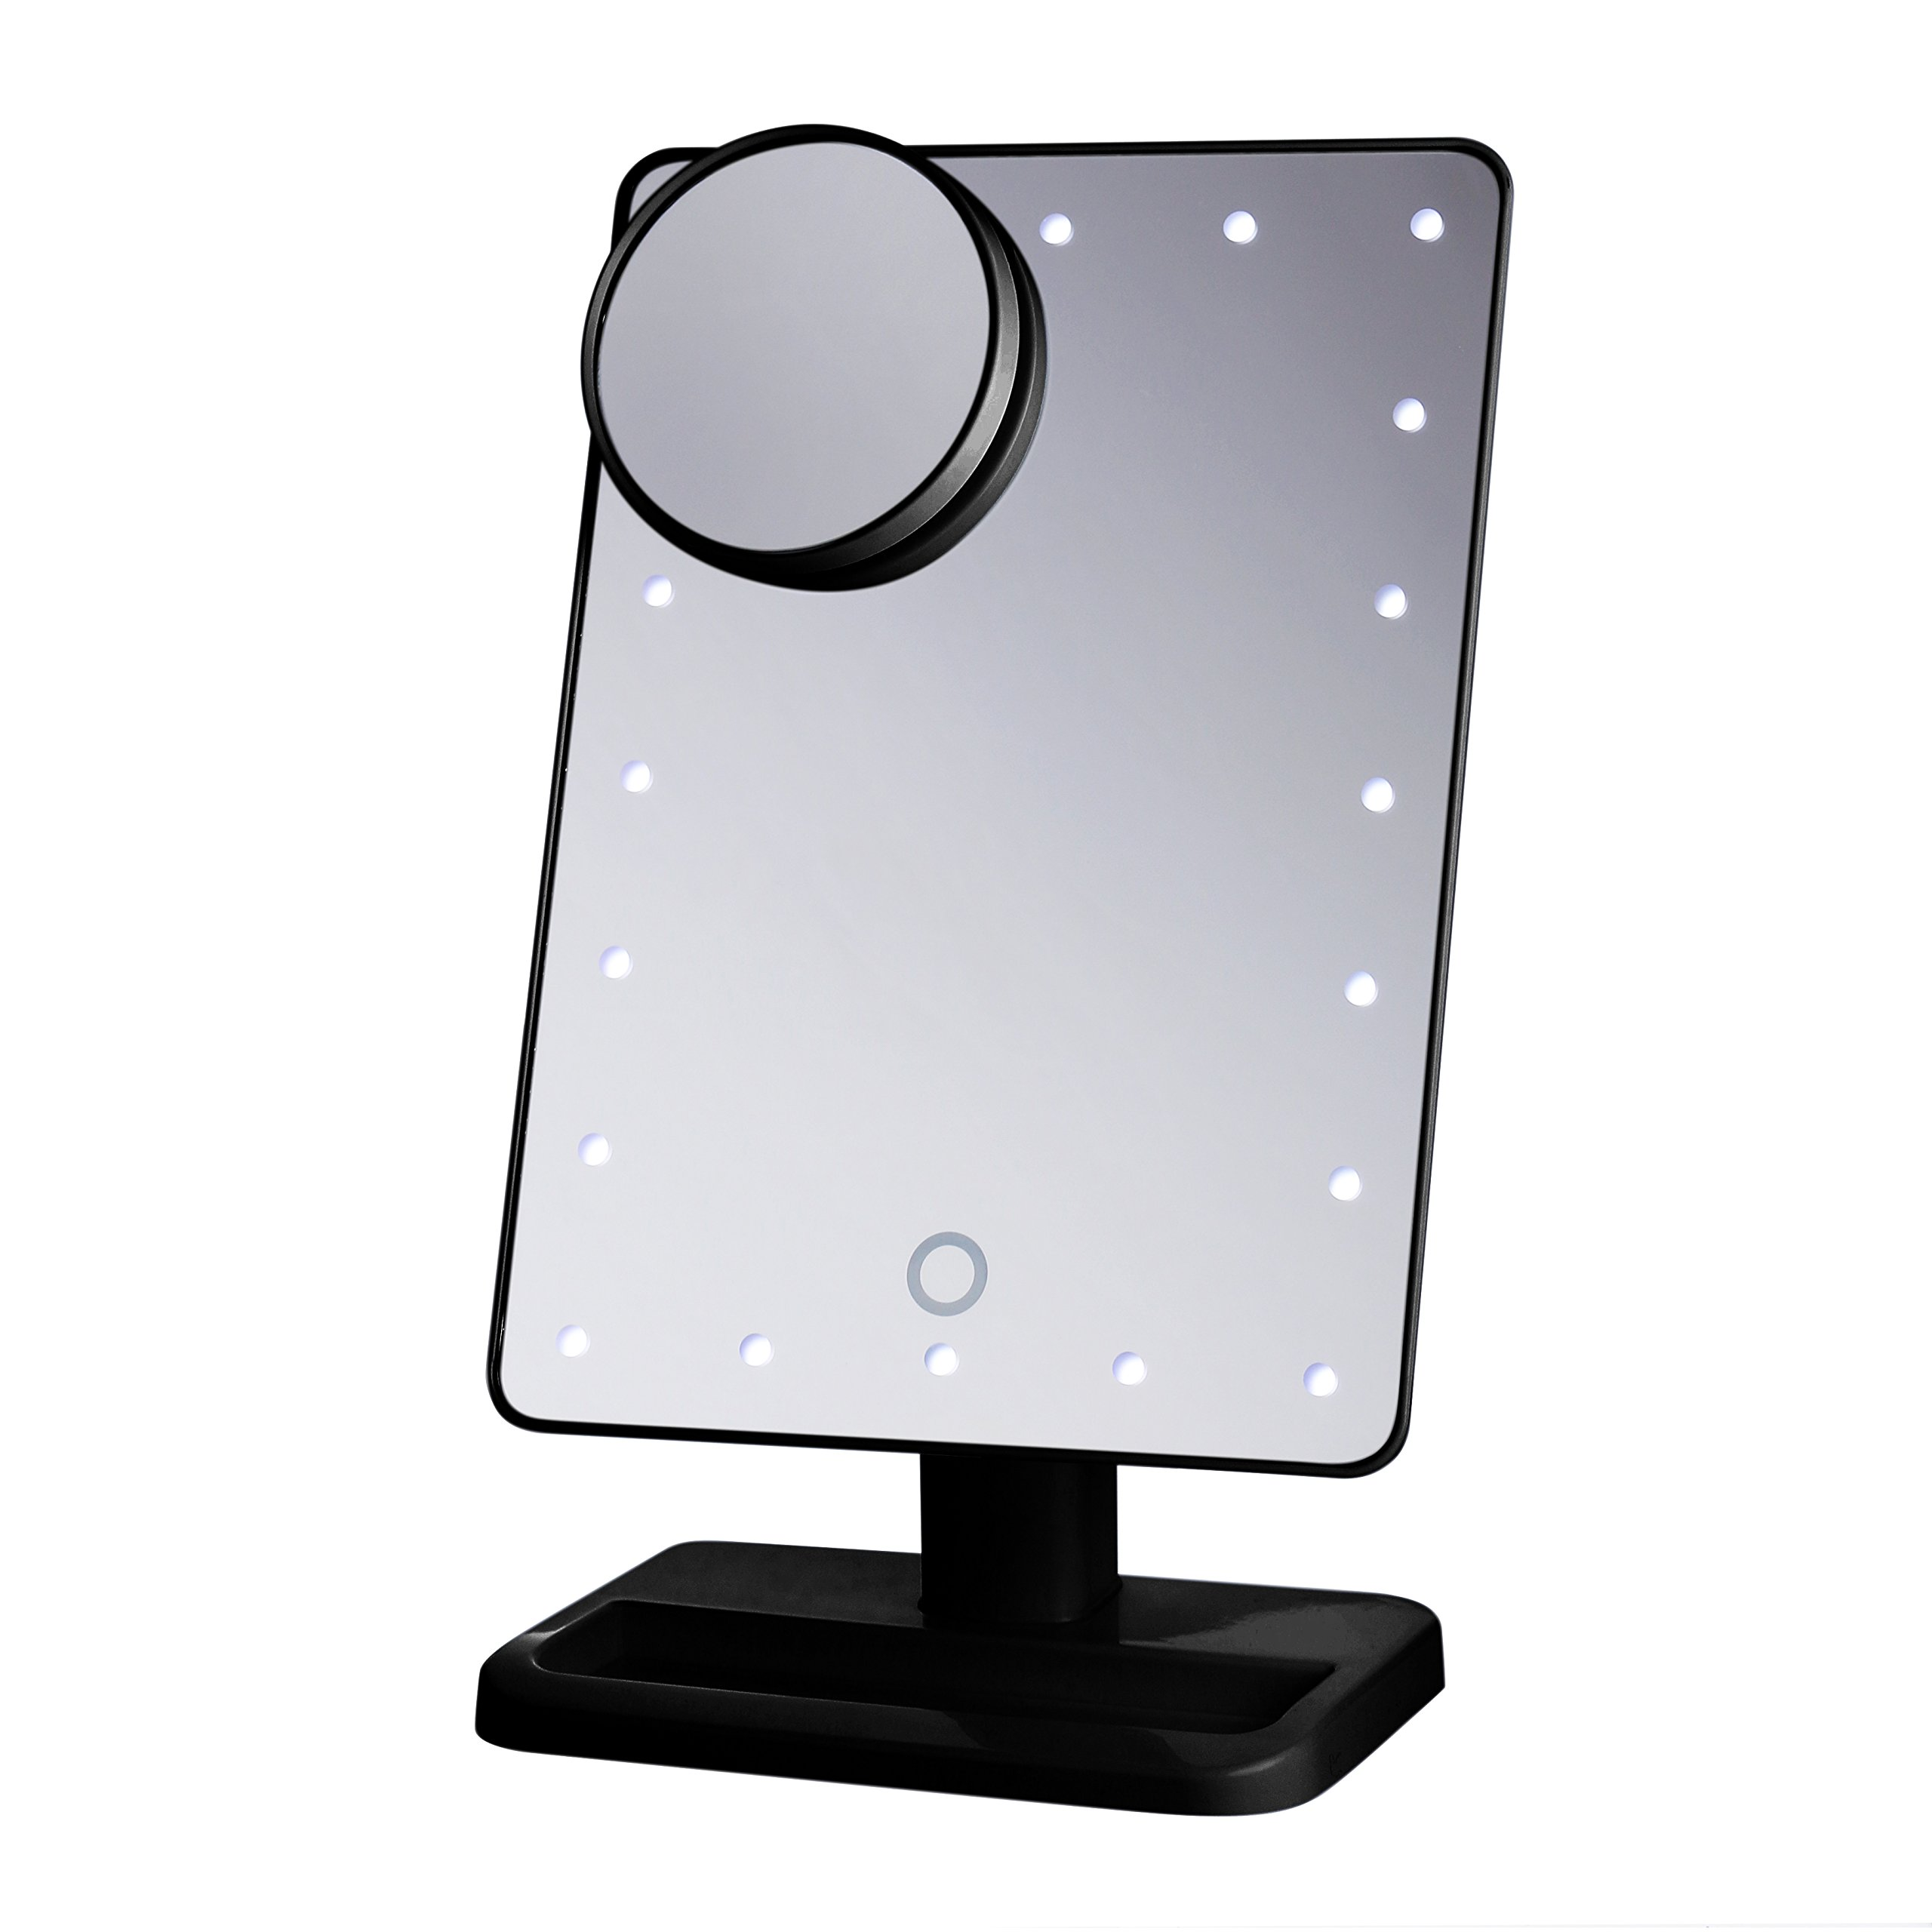 Beautify Beauties Lighted Makeup Mirror/Vanity Mirror, Touch Screen, Adjustable Brightness, Detachable 10X Magnification Spot Mirror, Batteries Included (Black)